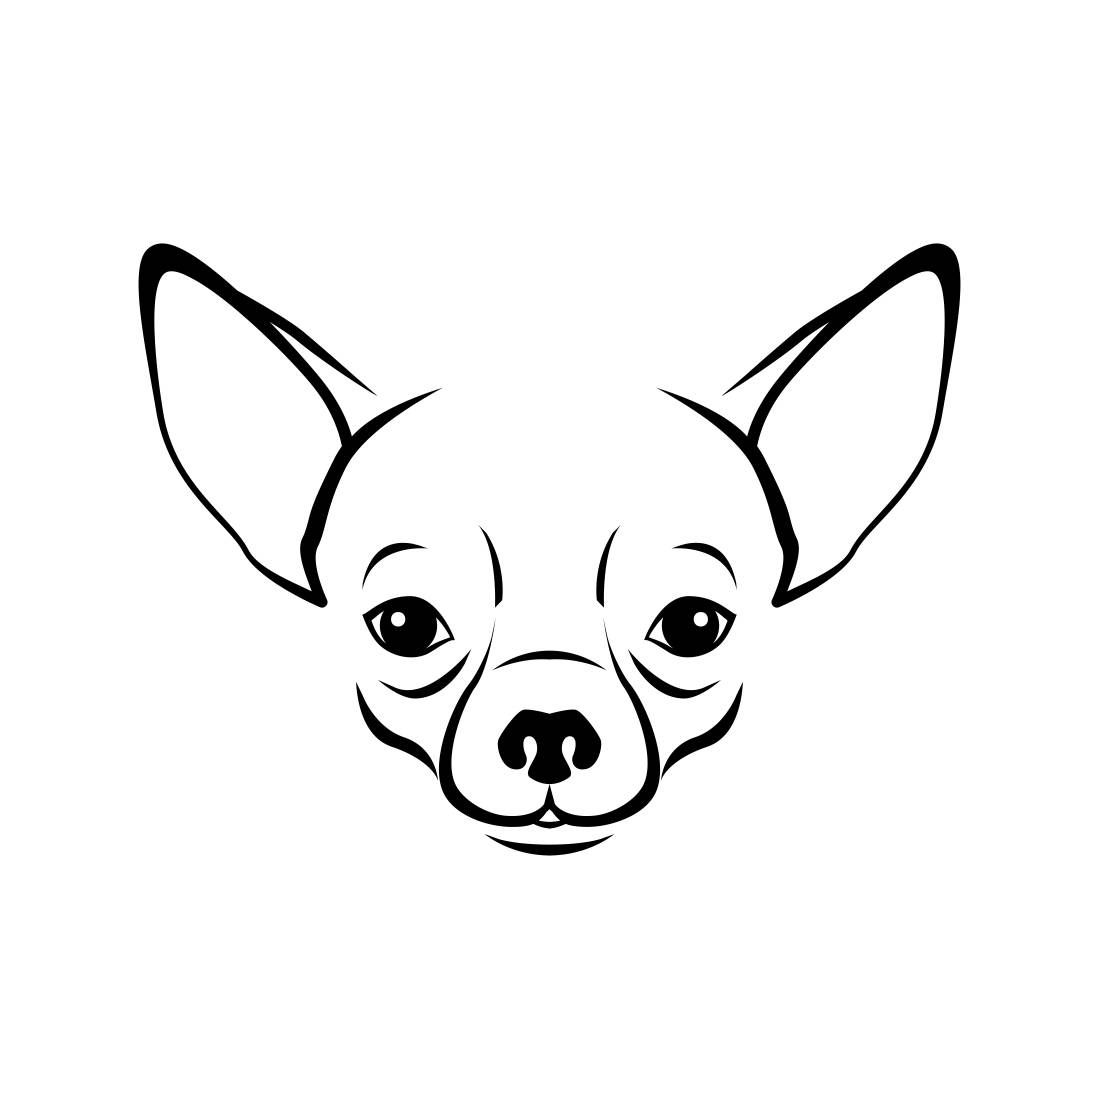 Download Chihuahua clipart svg, Chihuahua svg Transparent FREE for ...